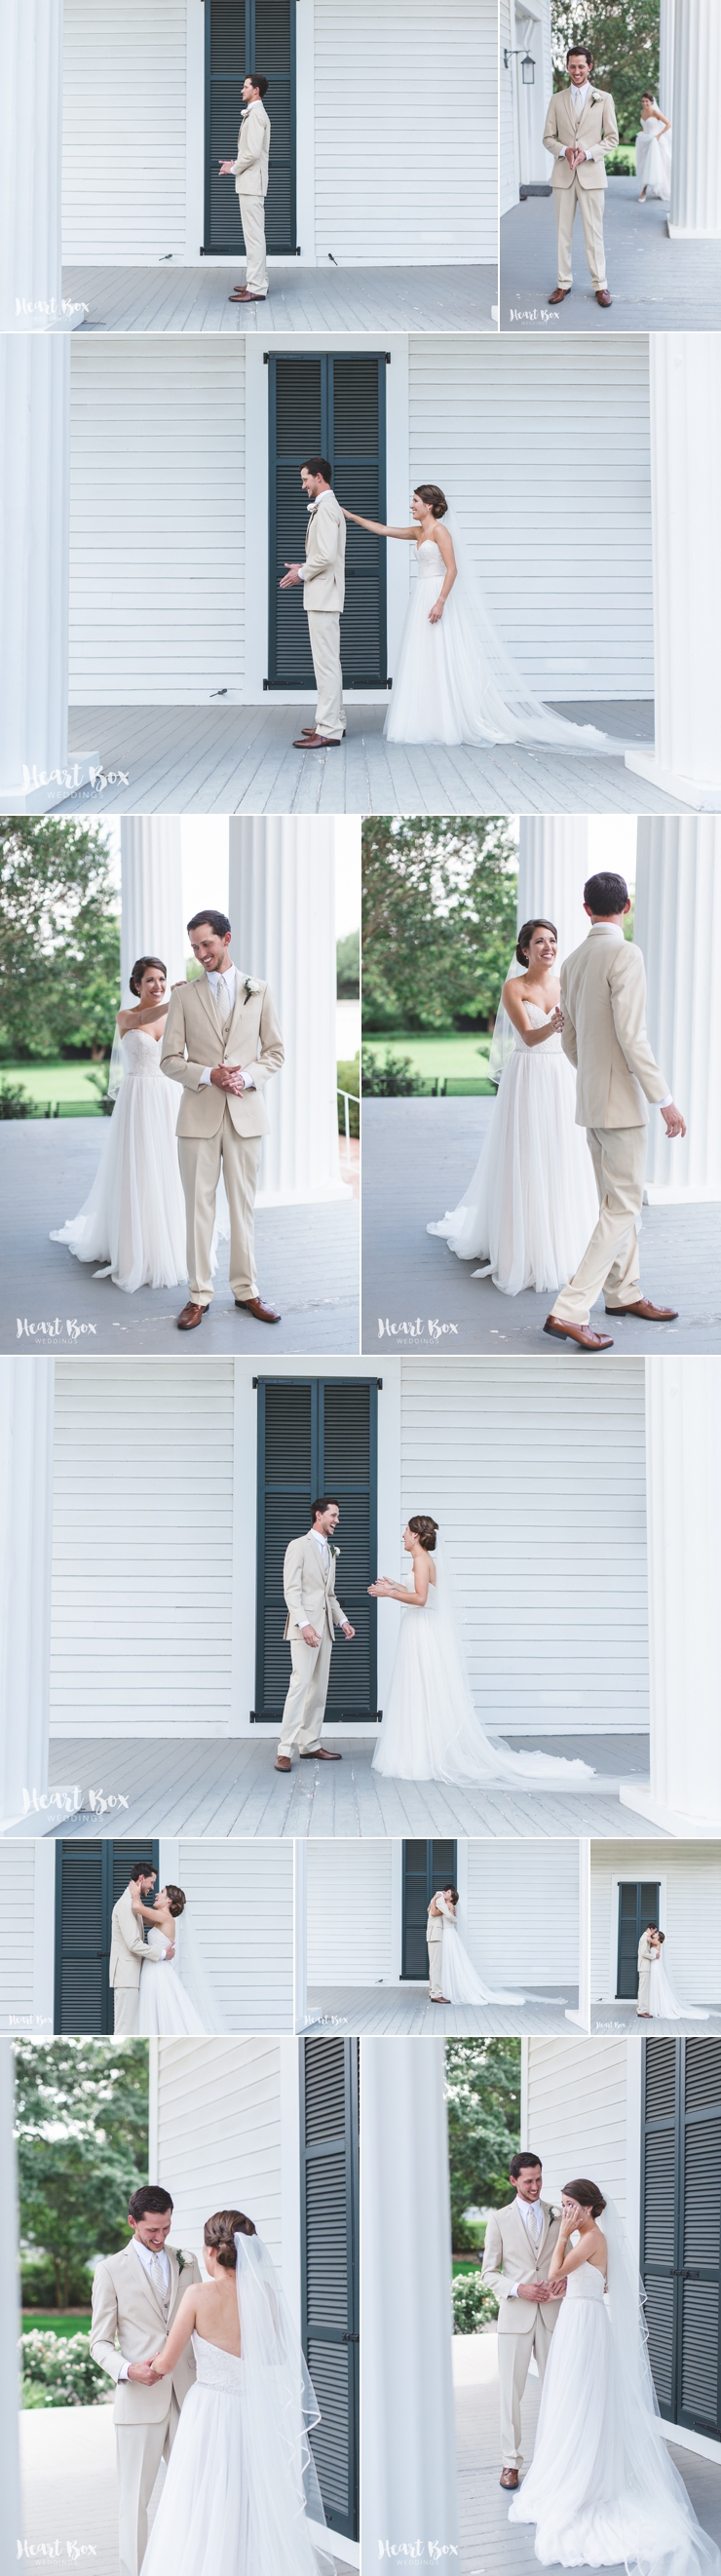 Glaser Wedding Blog Collages 7.jpg